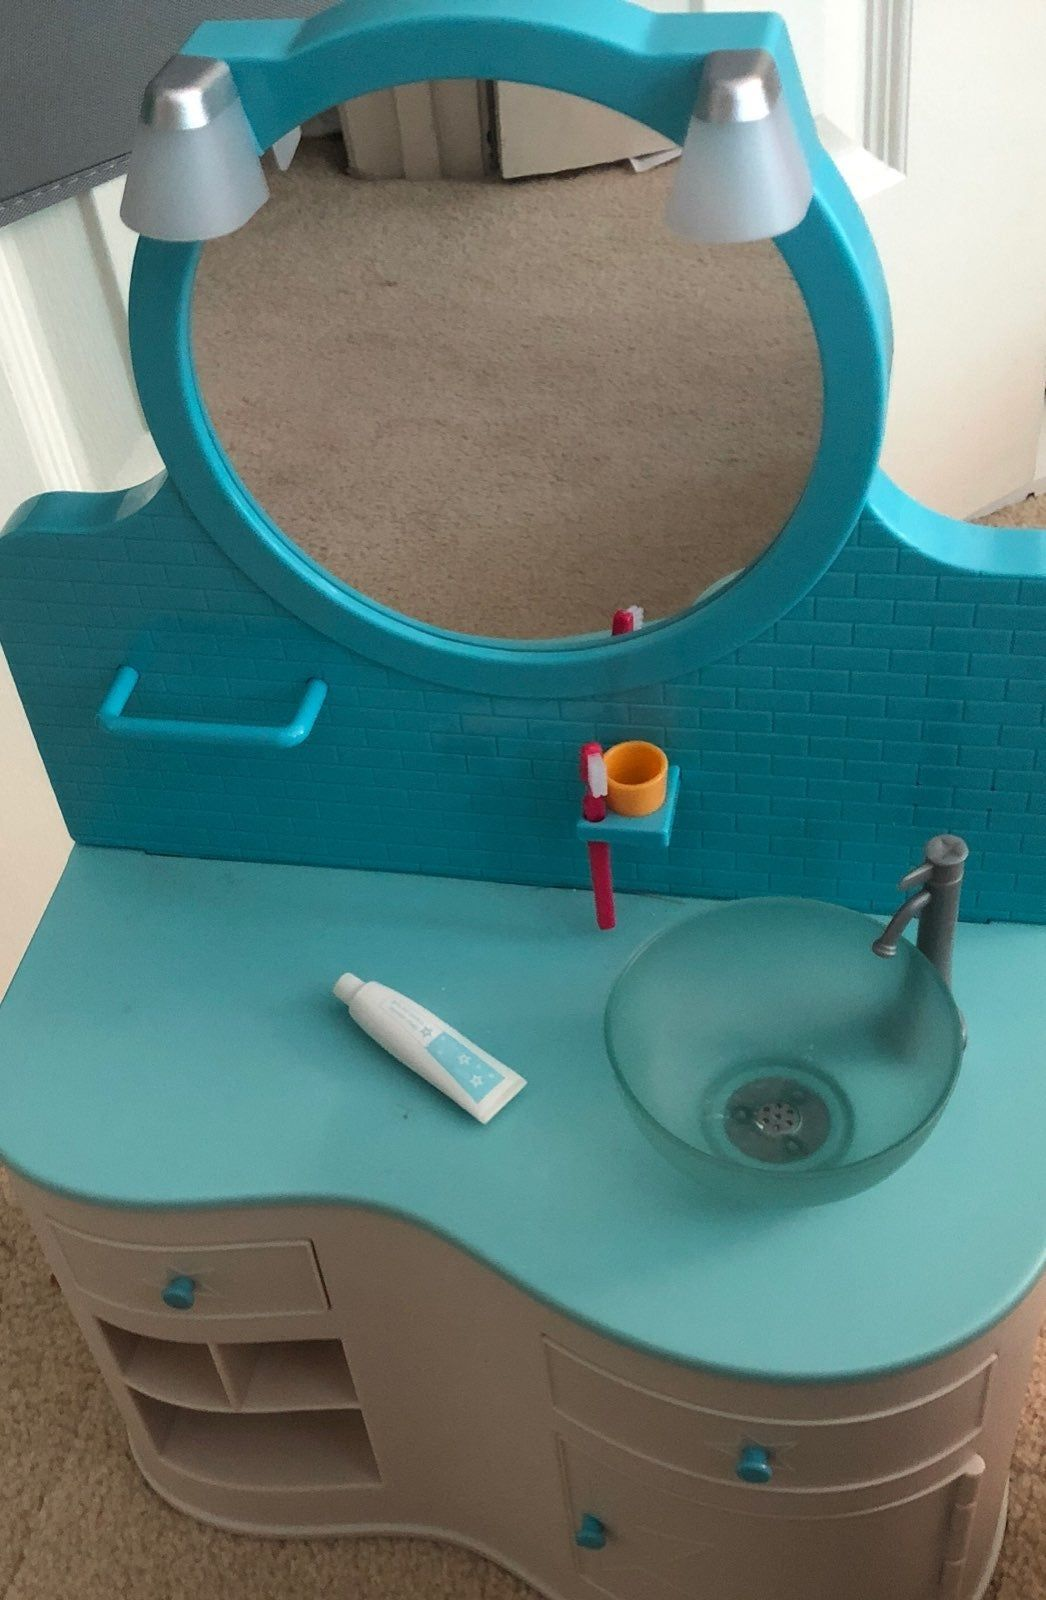 American Girl Doll Crafts And Fun Doll Bathroom Vanity Sink